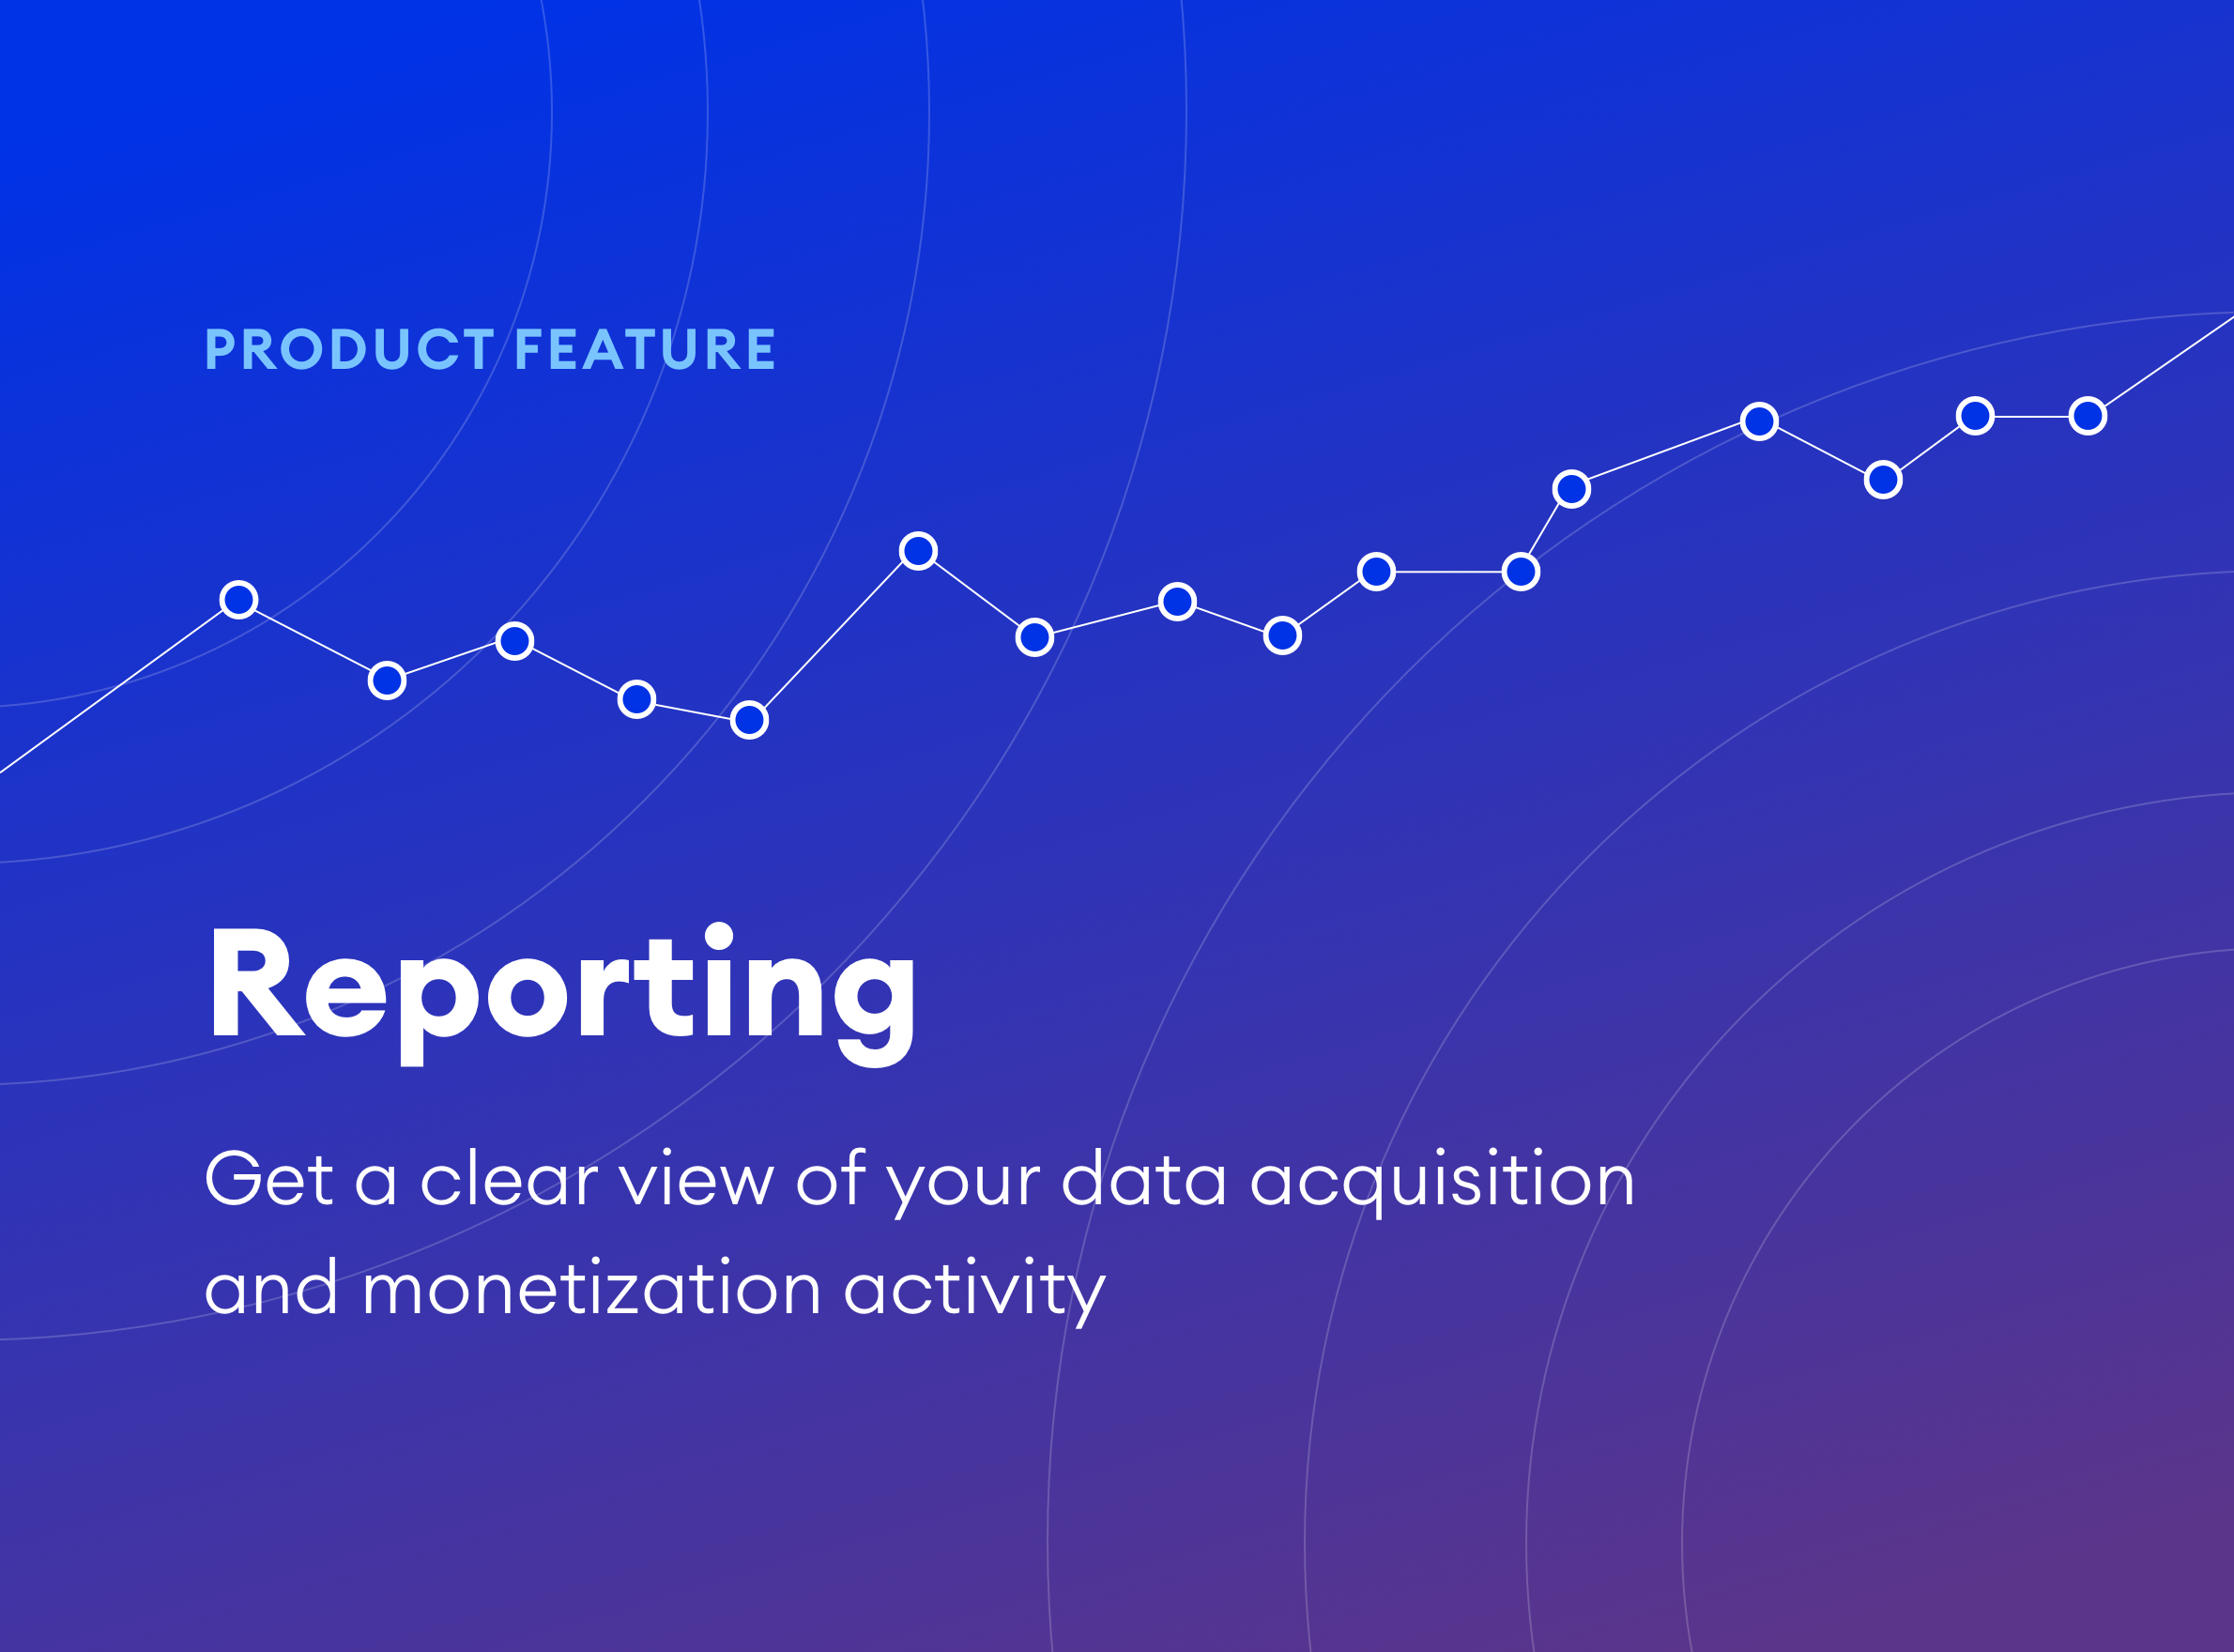 Better understand your data buying and selling activity with Reports